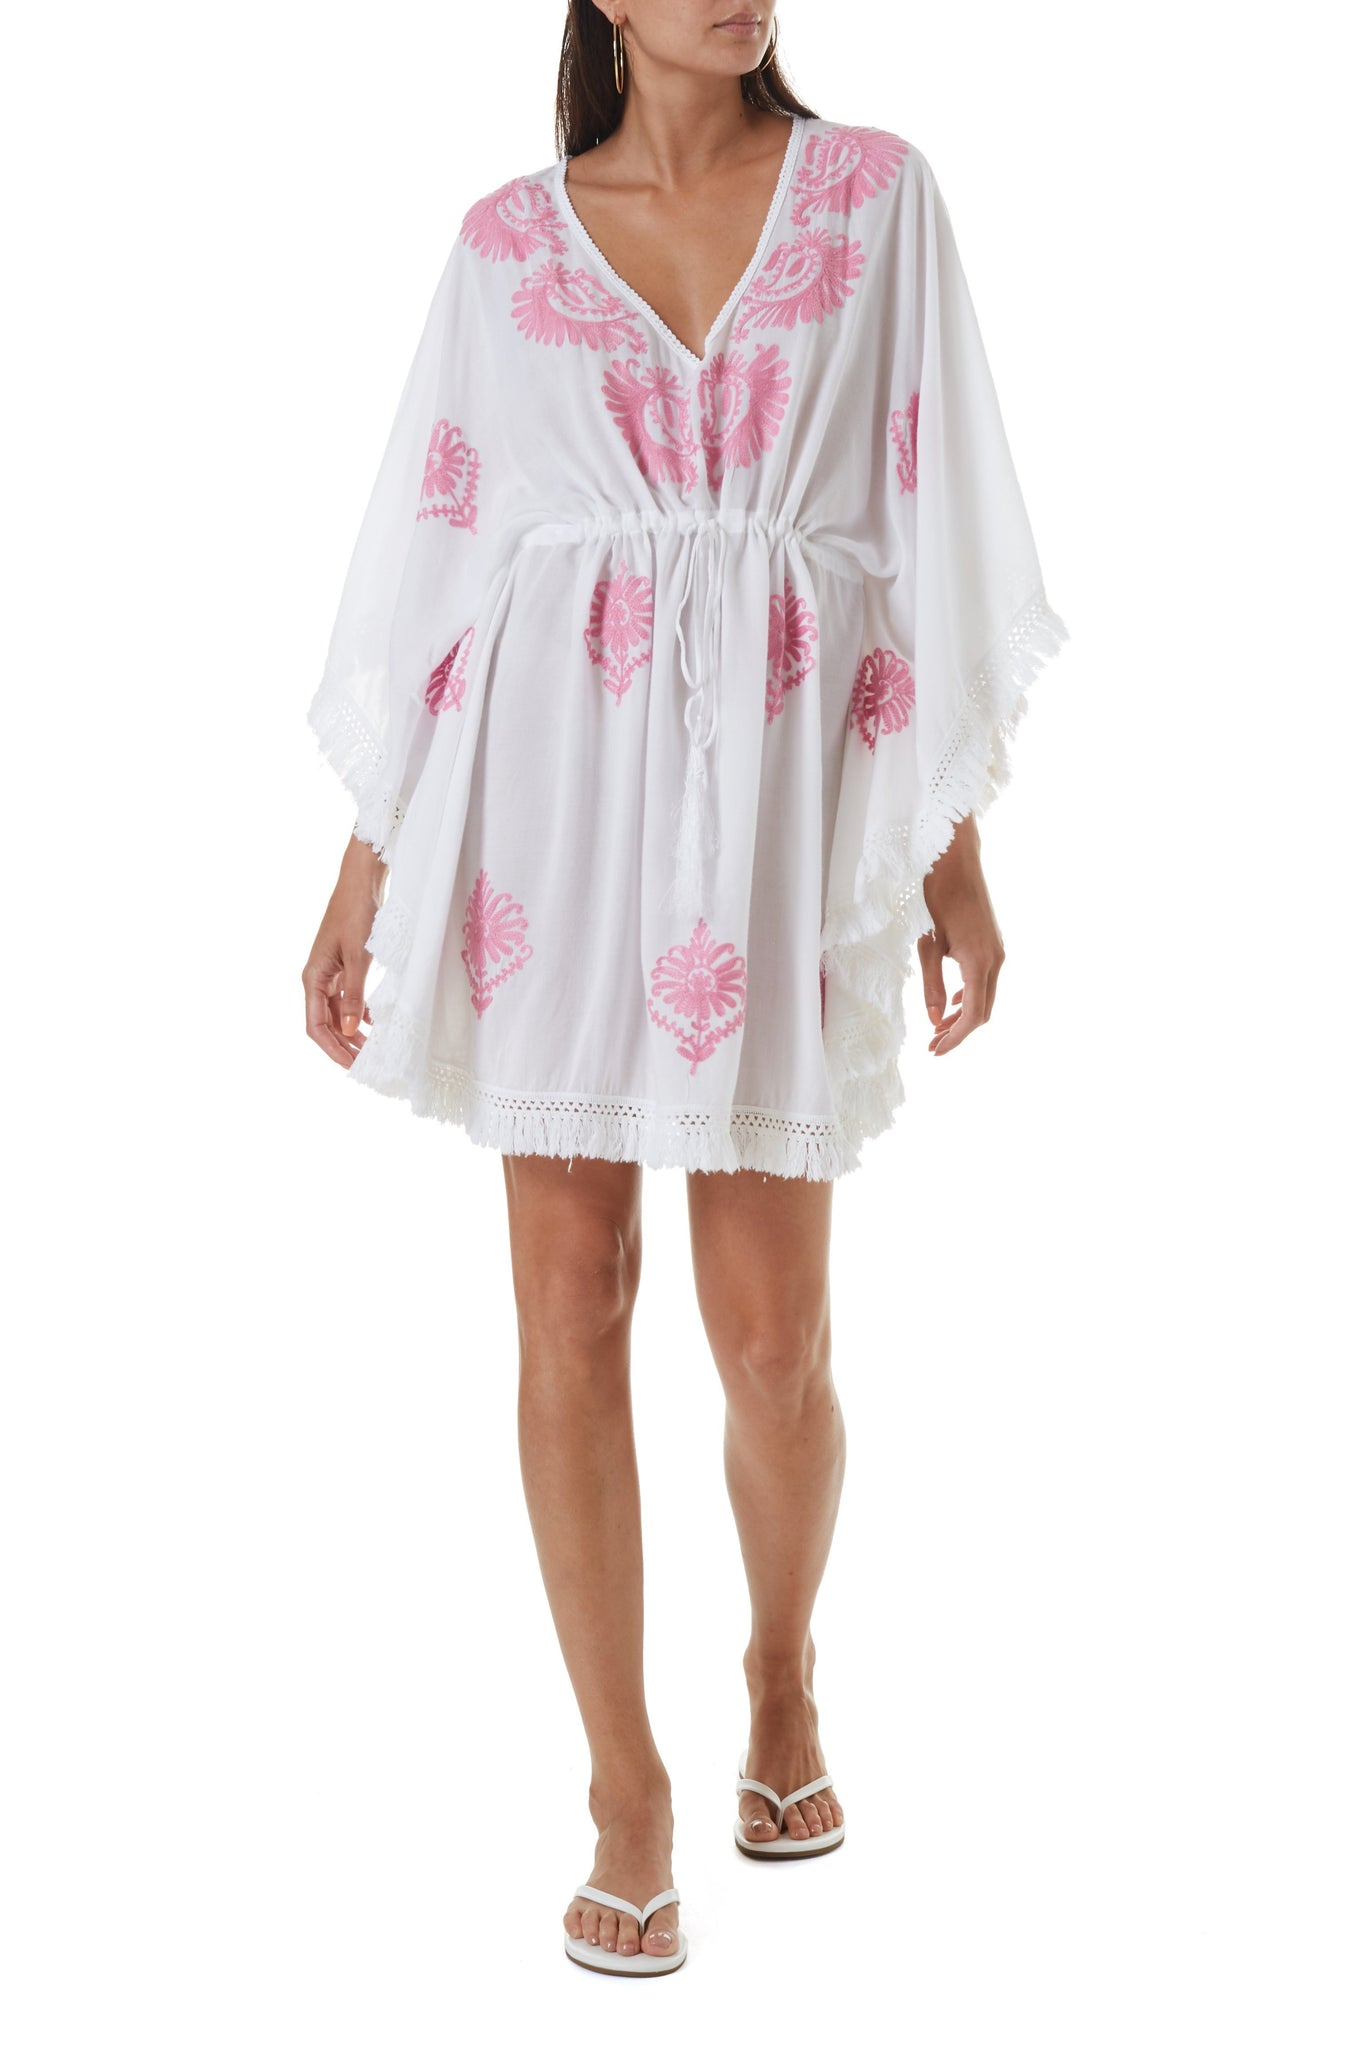 irene white rose short kaftan